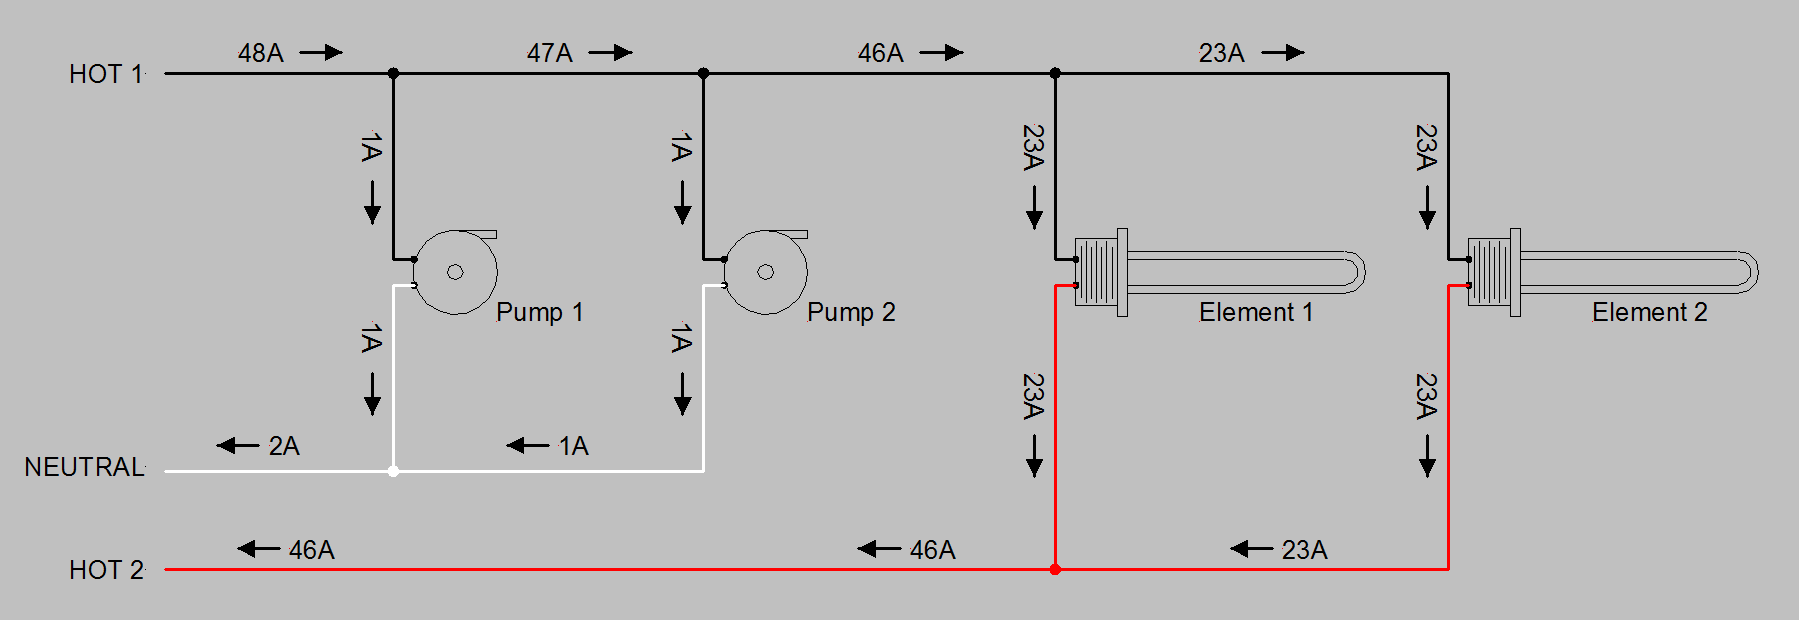 hight resolution of placement of ct donut on 50 amp panel homebrewtalk com  beer lifan 200cc